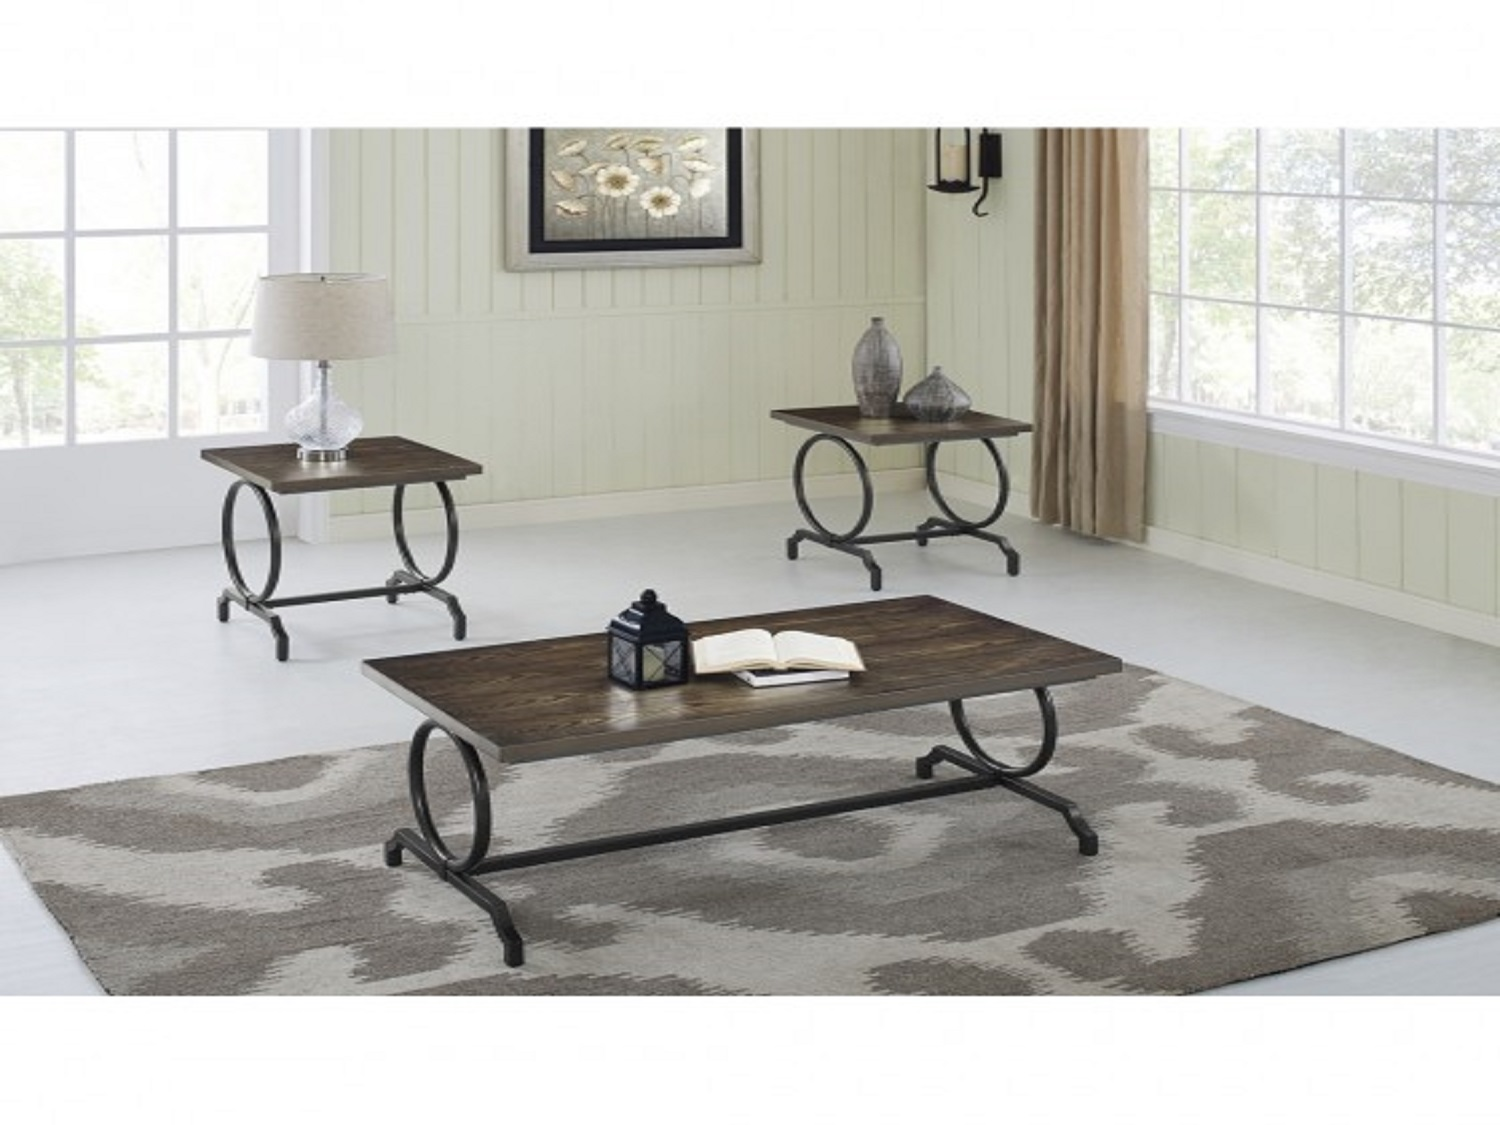 277-13 TINGA 3-PC COFFEE SET, 277-13, Coffee Table by Midha Furniture to Brampton, Mississauga, Etobicoke, Toronto, Scraborough, Caledon, Oakville, Markham, Ajax, Pickering, Oshawa, Richmondhill, Kitchener, Hamilton and GTA area